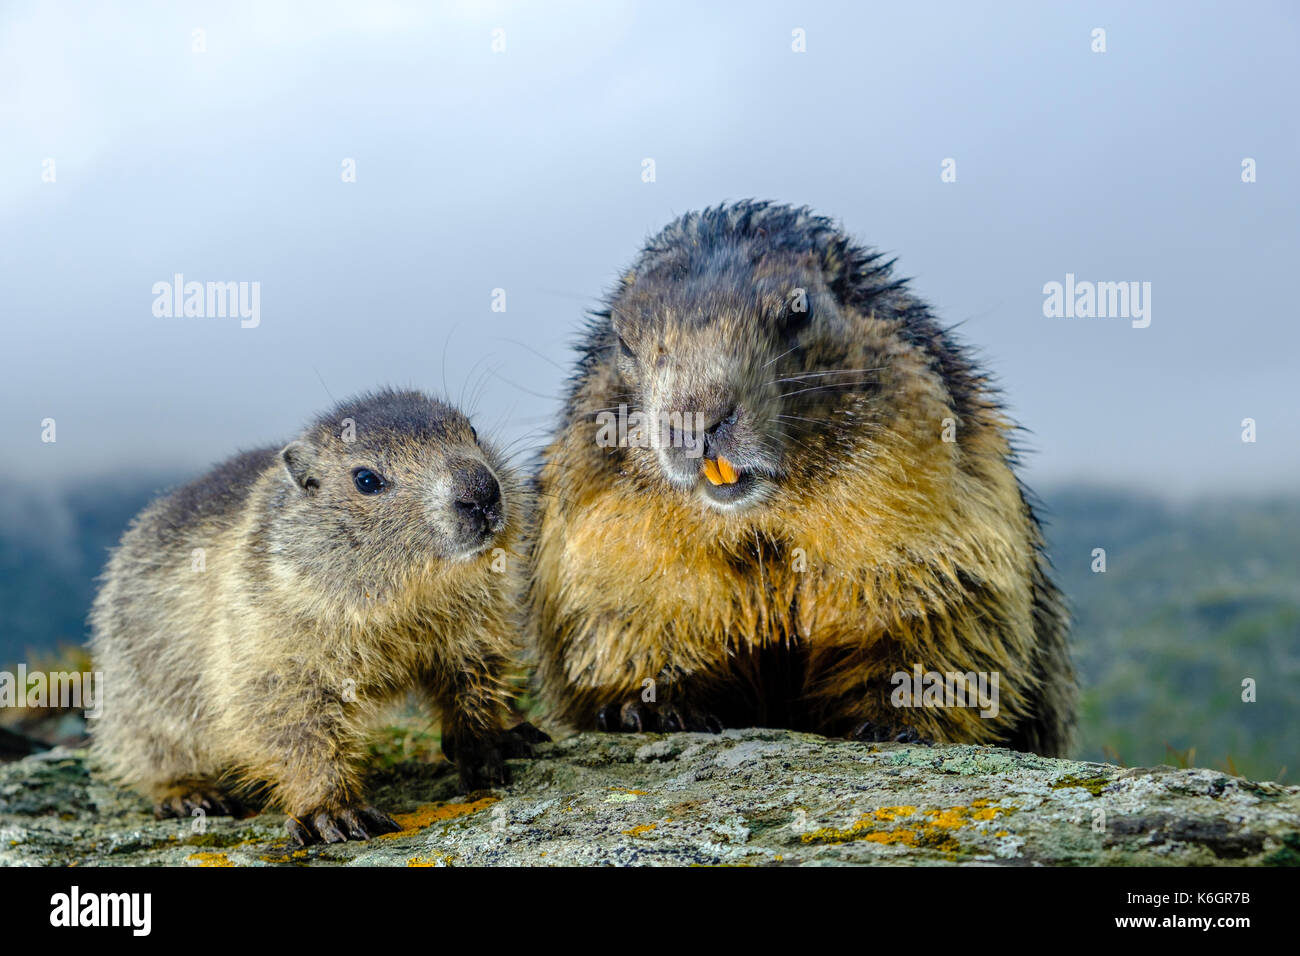 An adult and a baby Alpine marmot (Marmota marmota) are sitting on a rock at Kaiser-Franz-Josefs-Höhe - Stock Image